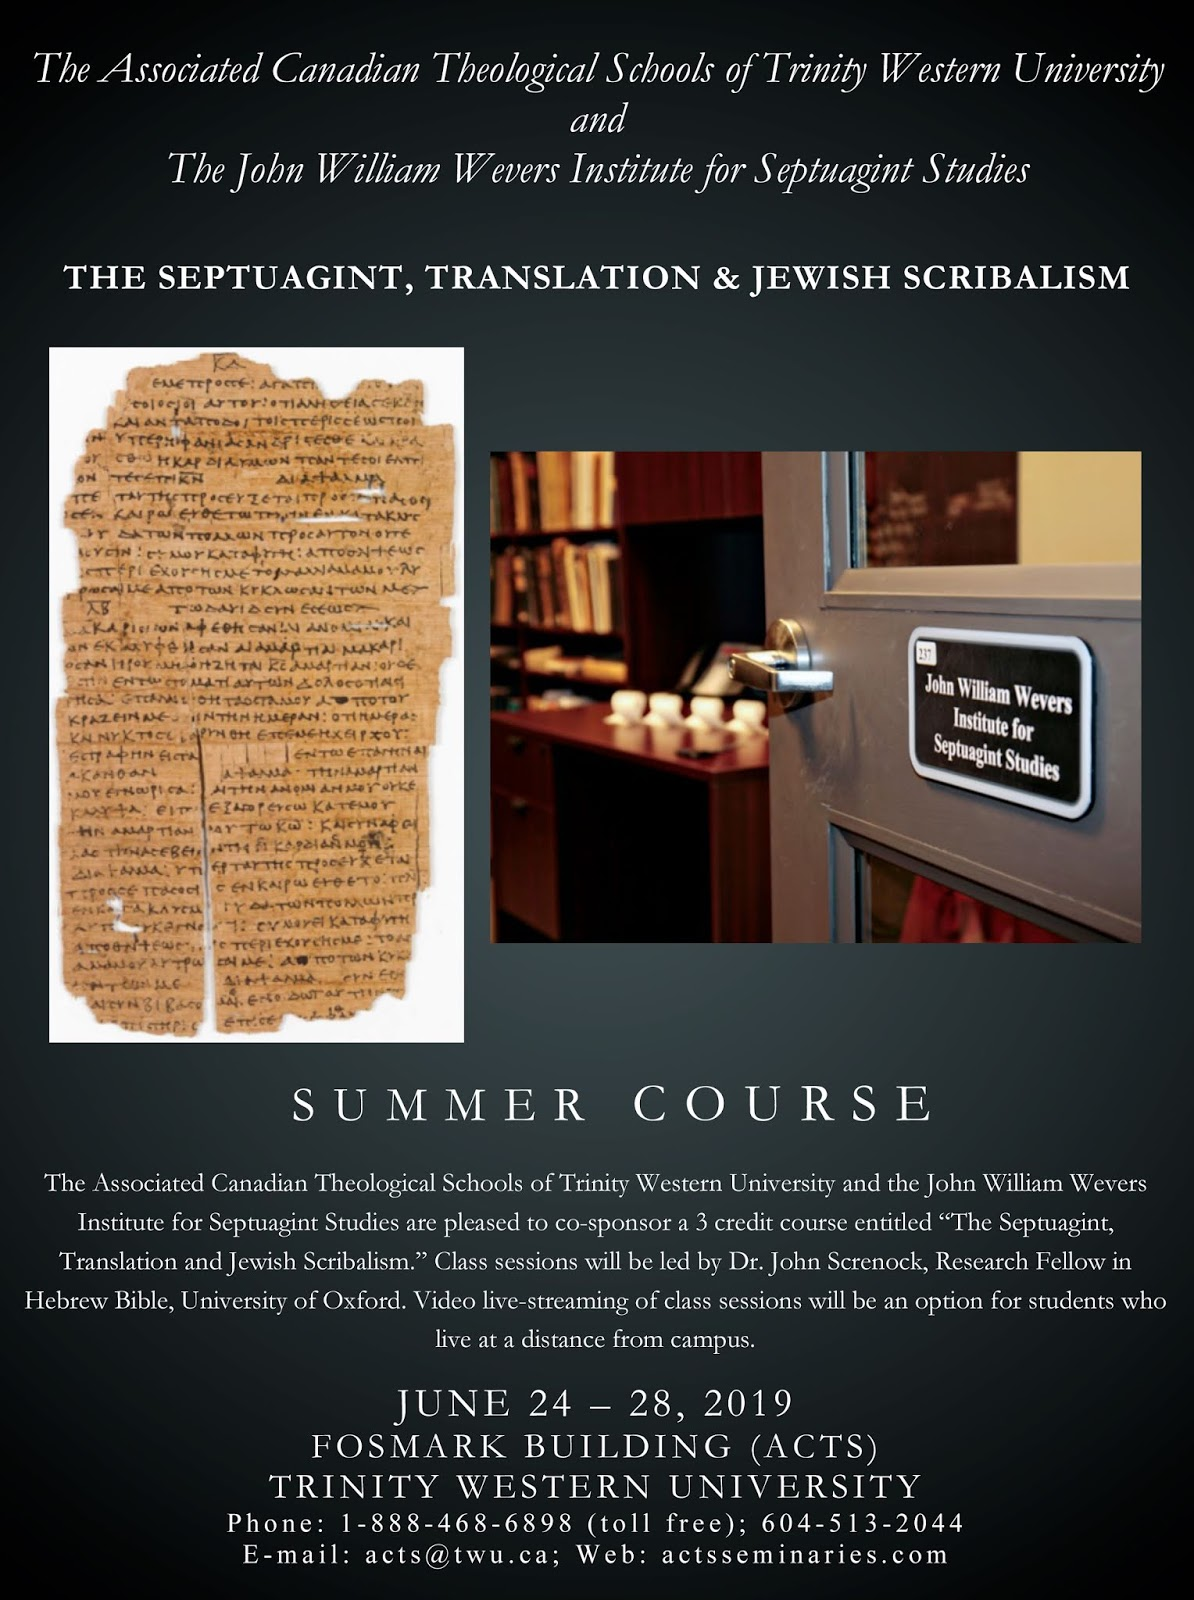 Evangelical Textual Criticism: Septuagint Summer Course at Trinity